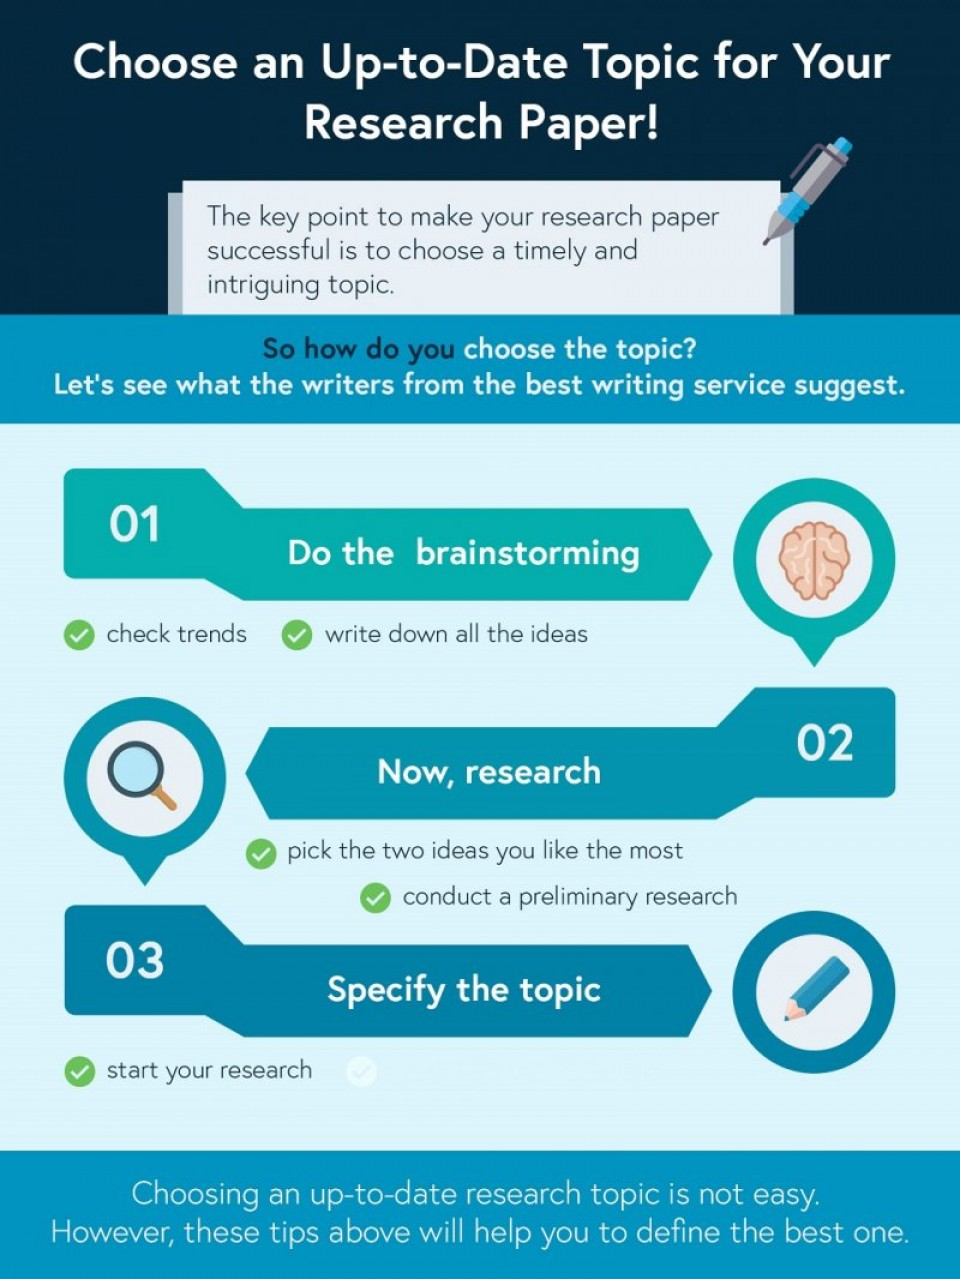 006 Research Paper Infographic Writing Dreaded Service Services In India Online Chennai 960